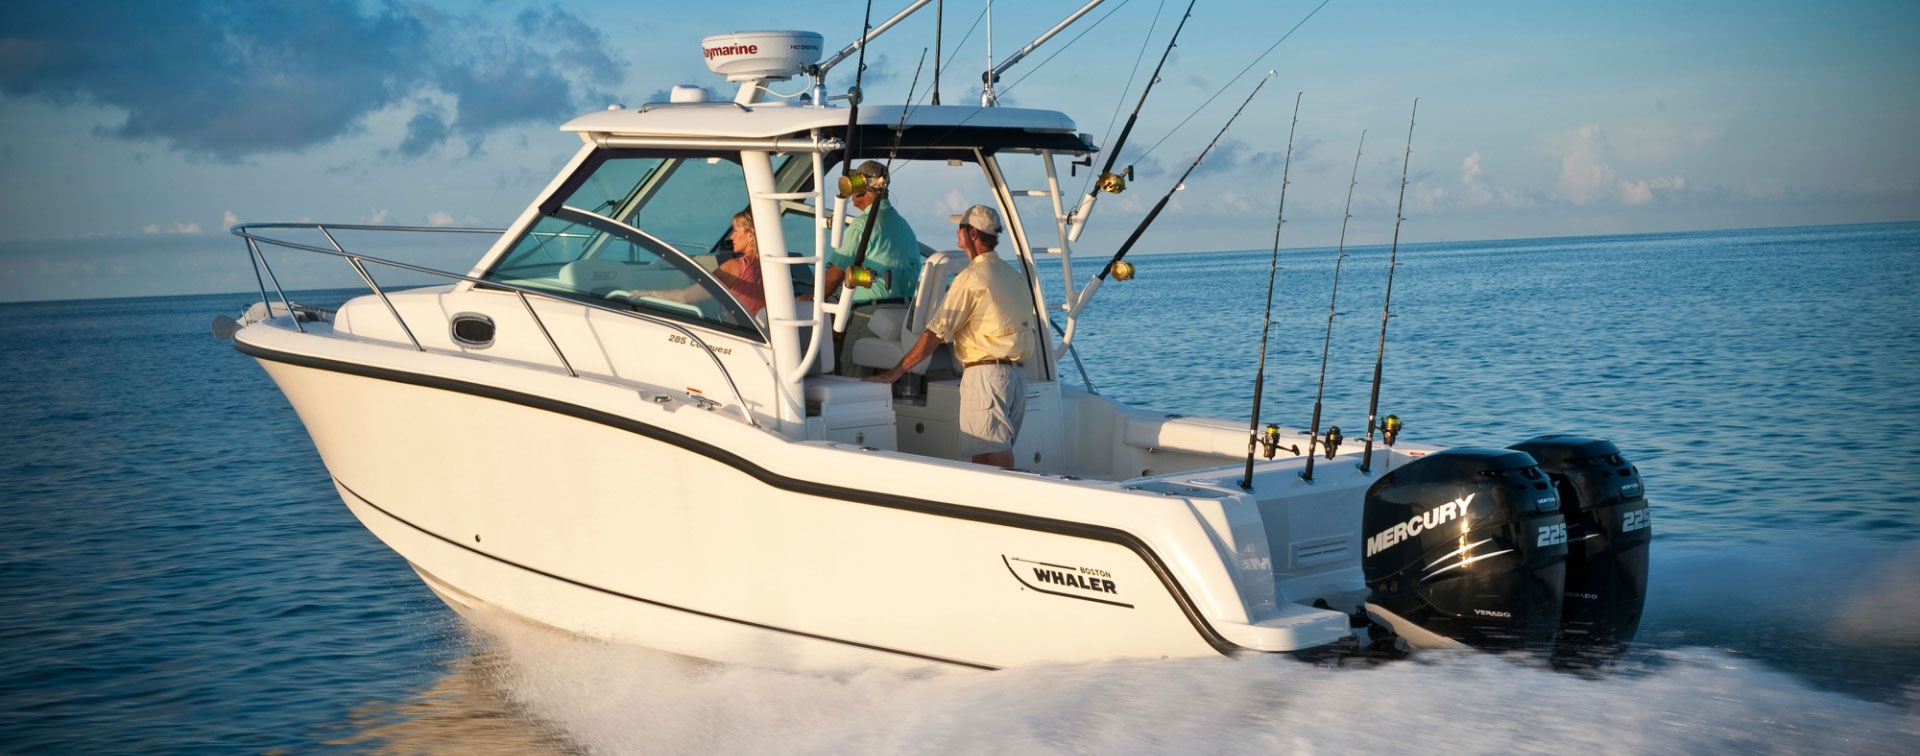 Sports marine boats for sale nz for Outboard motors for sale nz